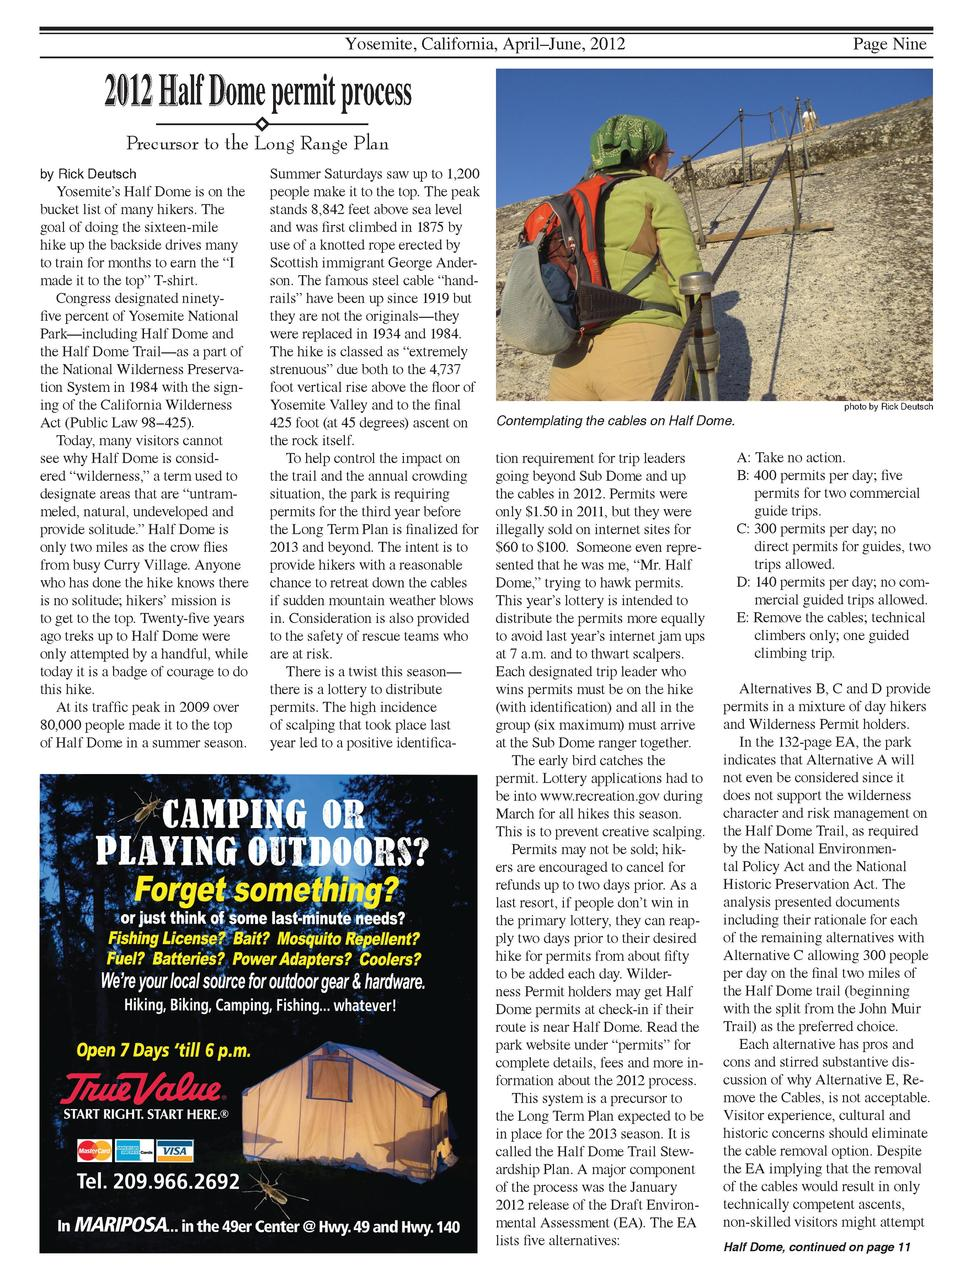 Yosemite, California, April   June, 2012  Page Nine  2012 Half Dome permit process Precursor to the Long Range Plan by Ric...